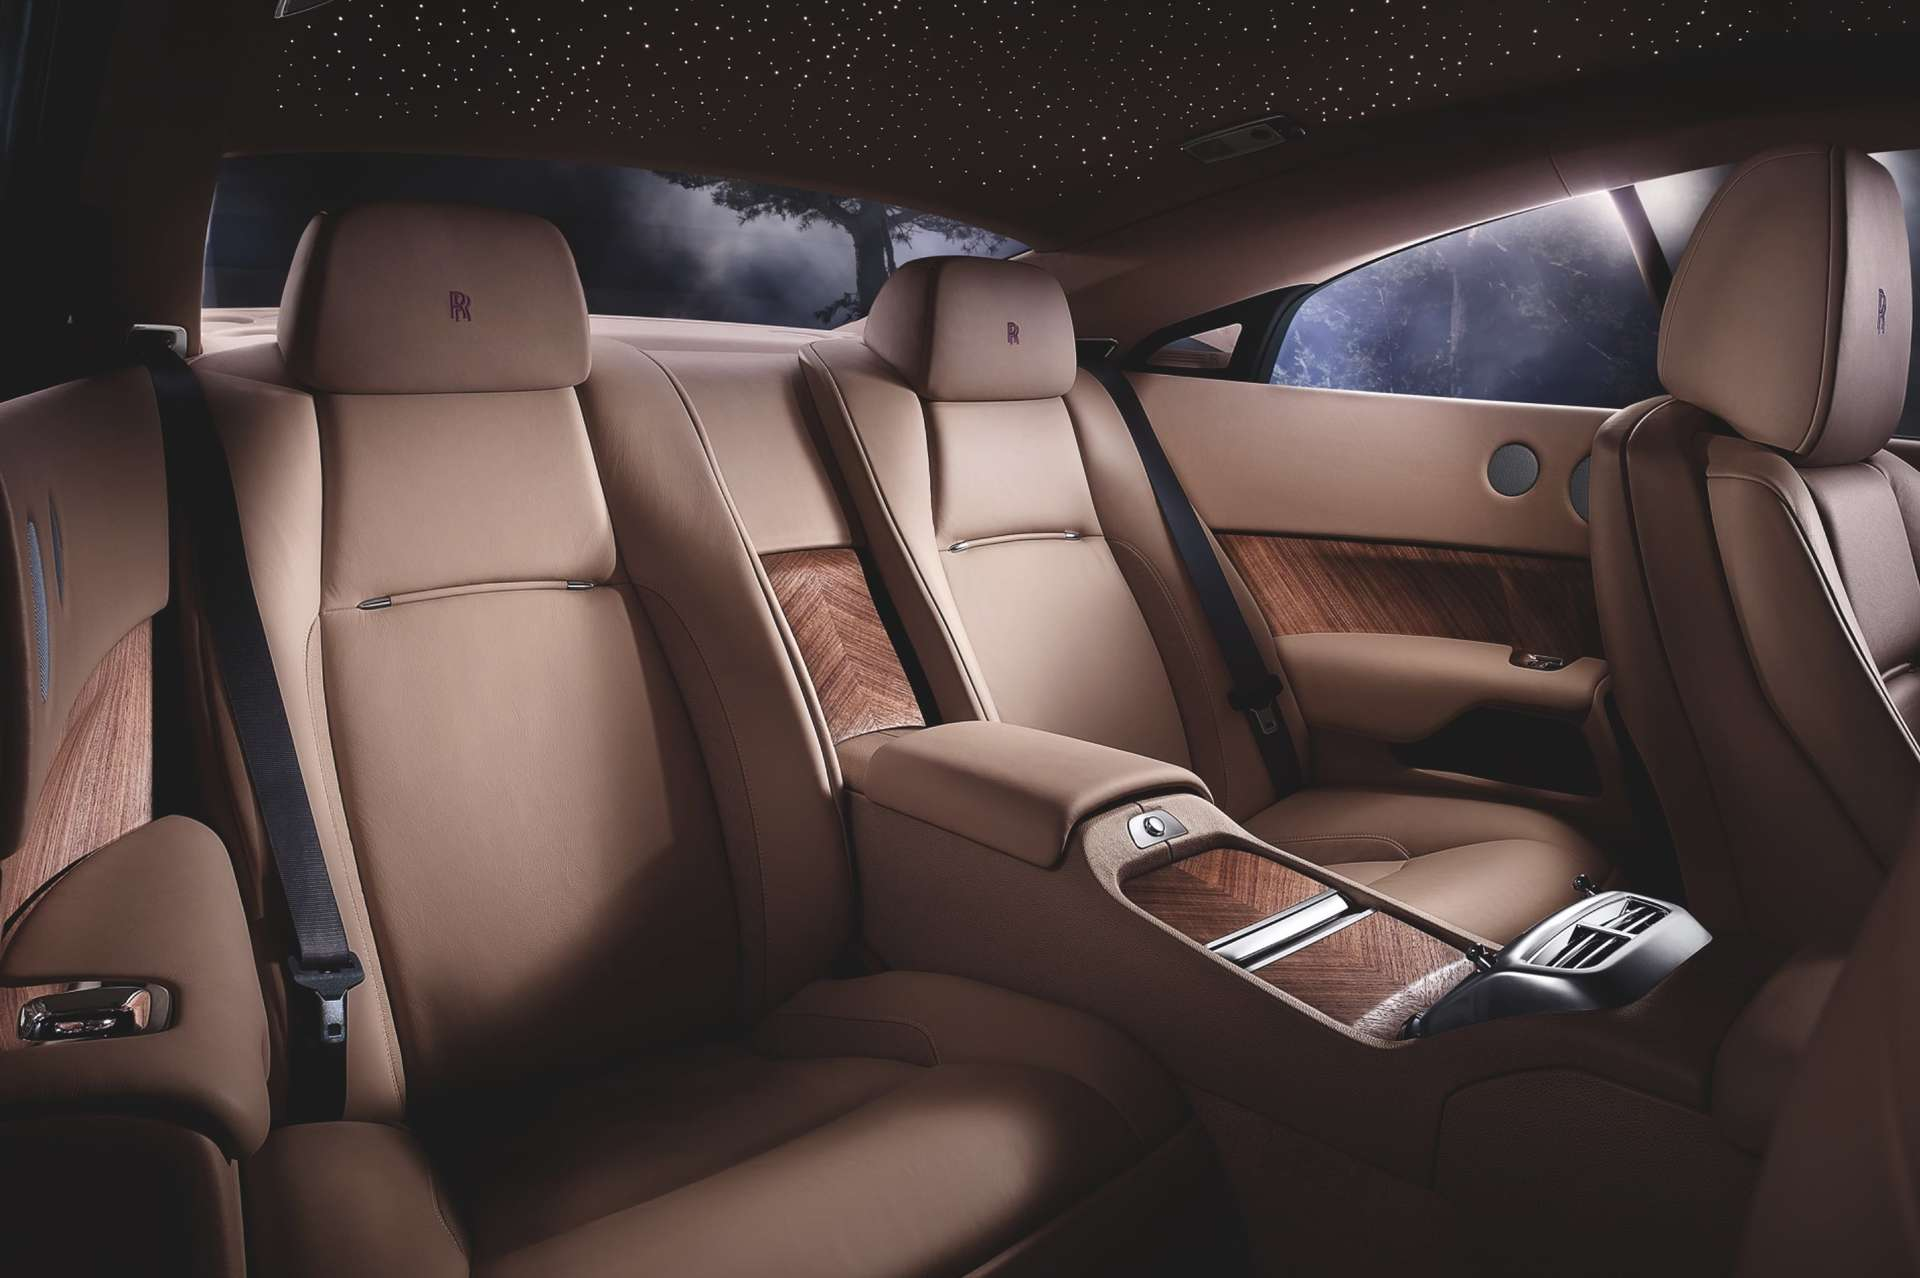 rolls-royce wraith back seat interiors